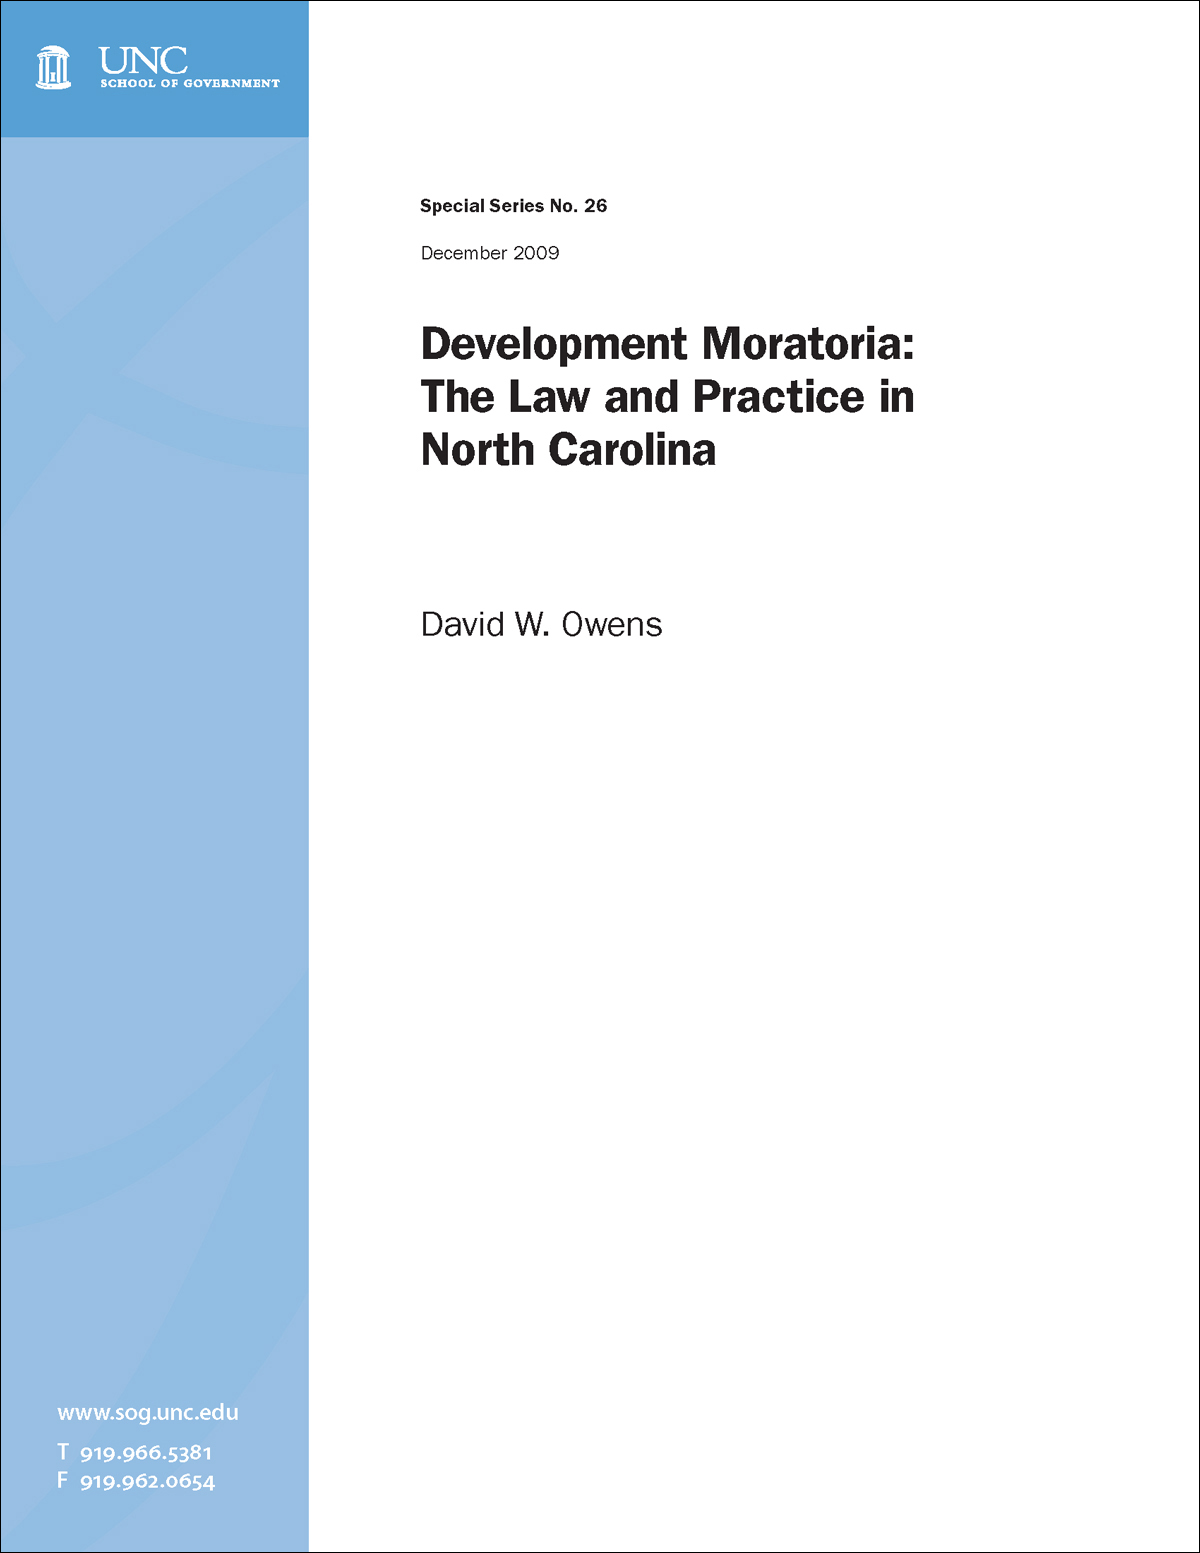 Development Moratoria: The Law and Practice in North Carolina, Special Series No. 26, December 2009